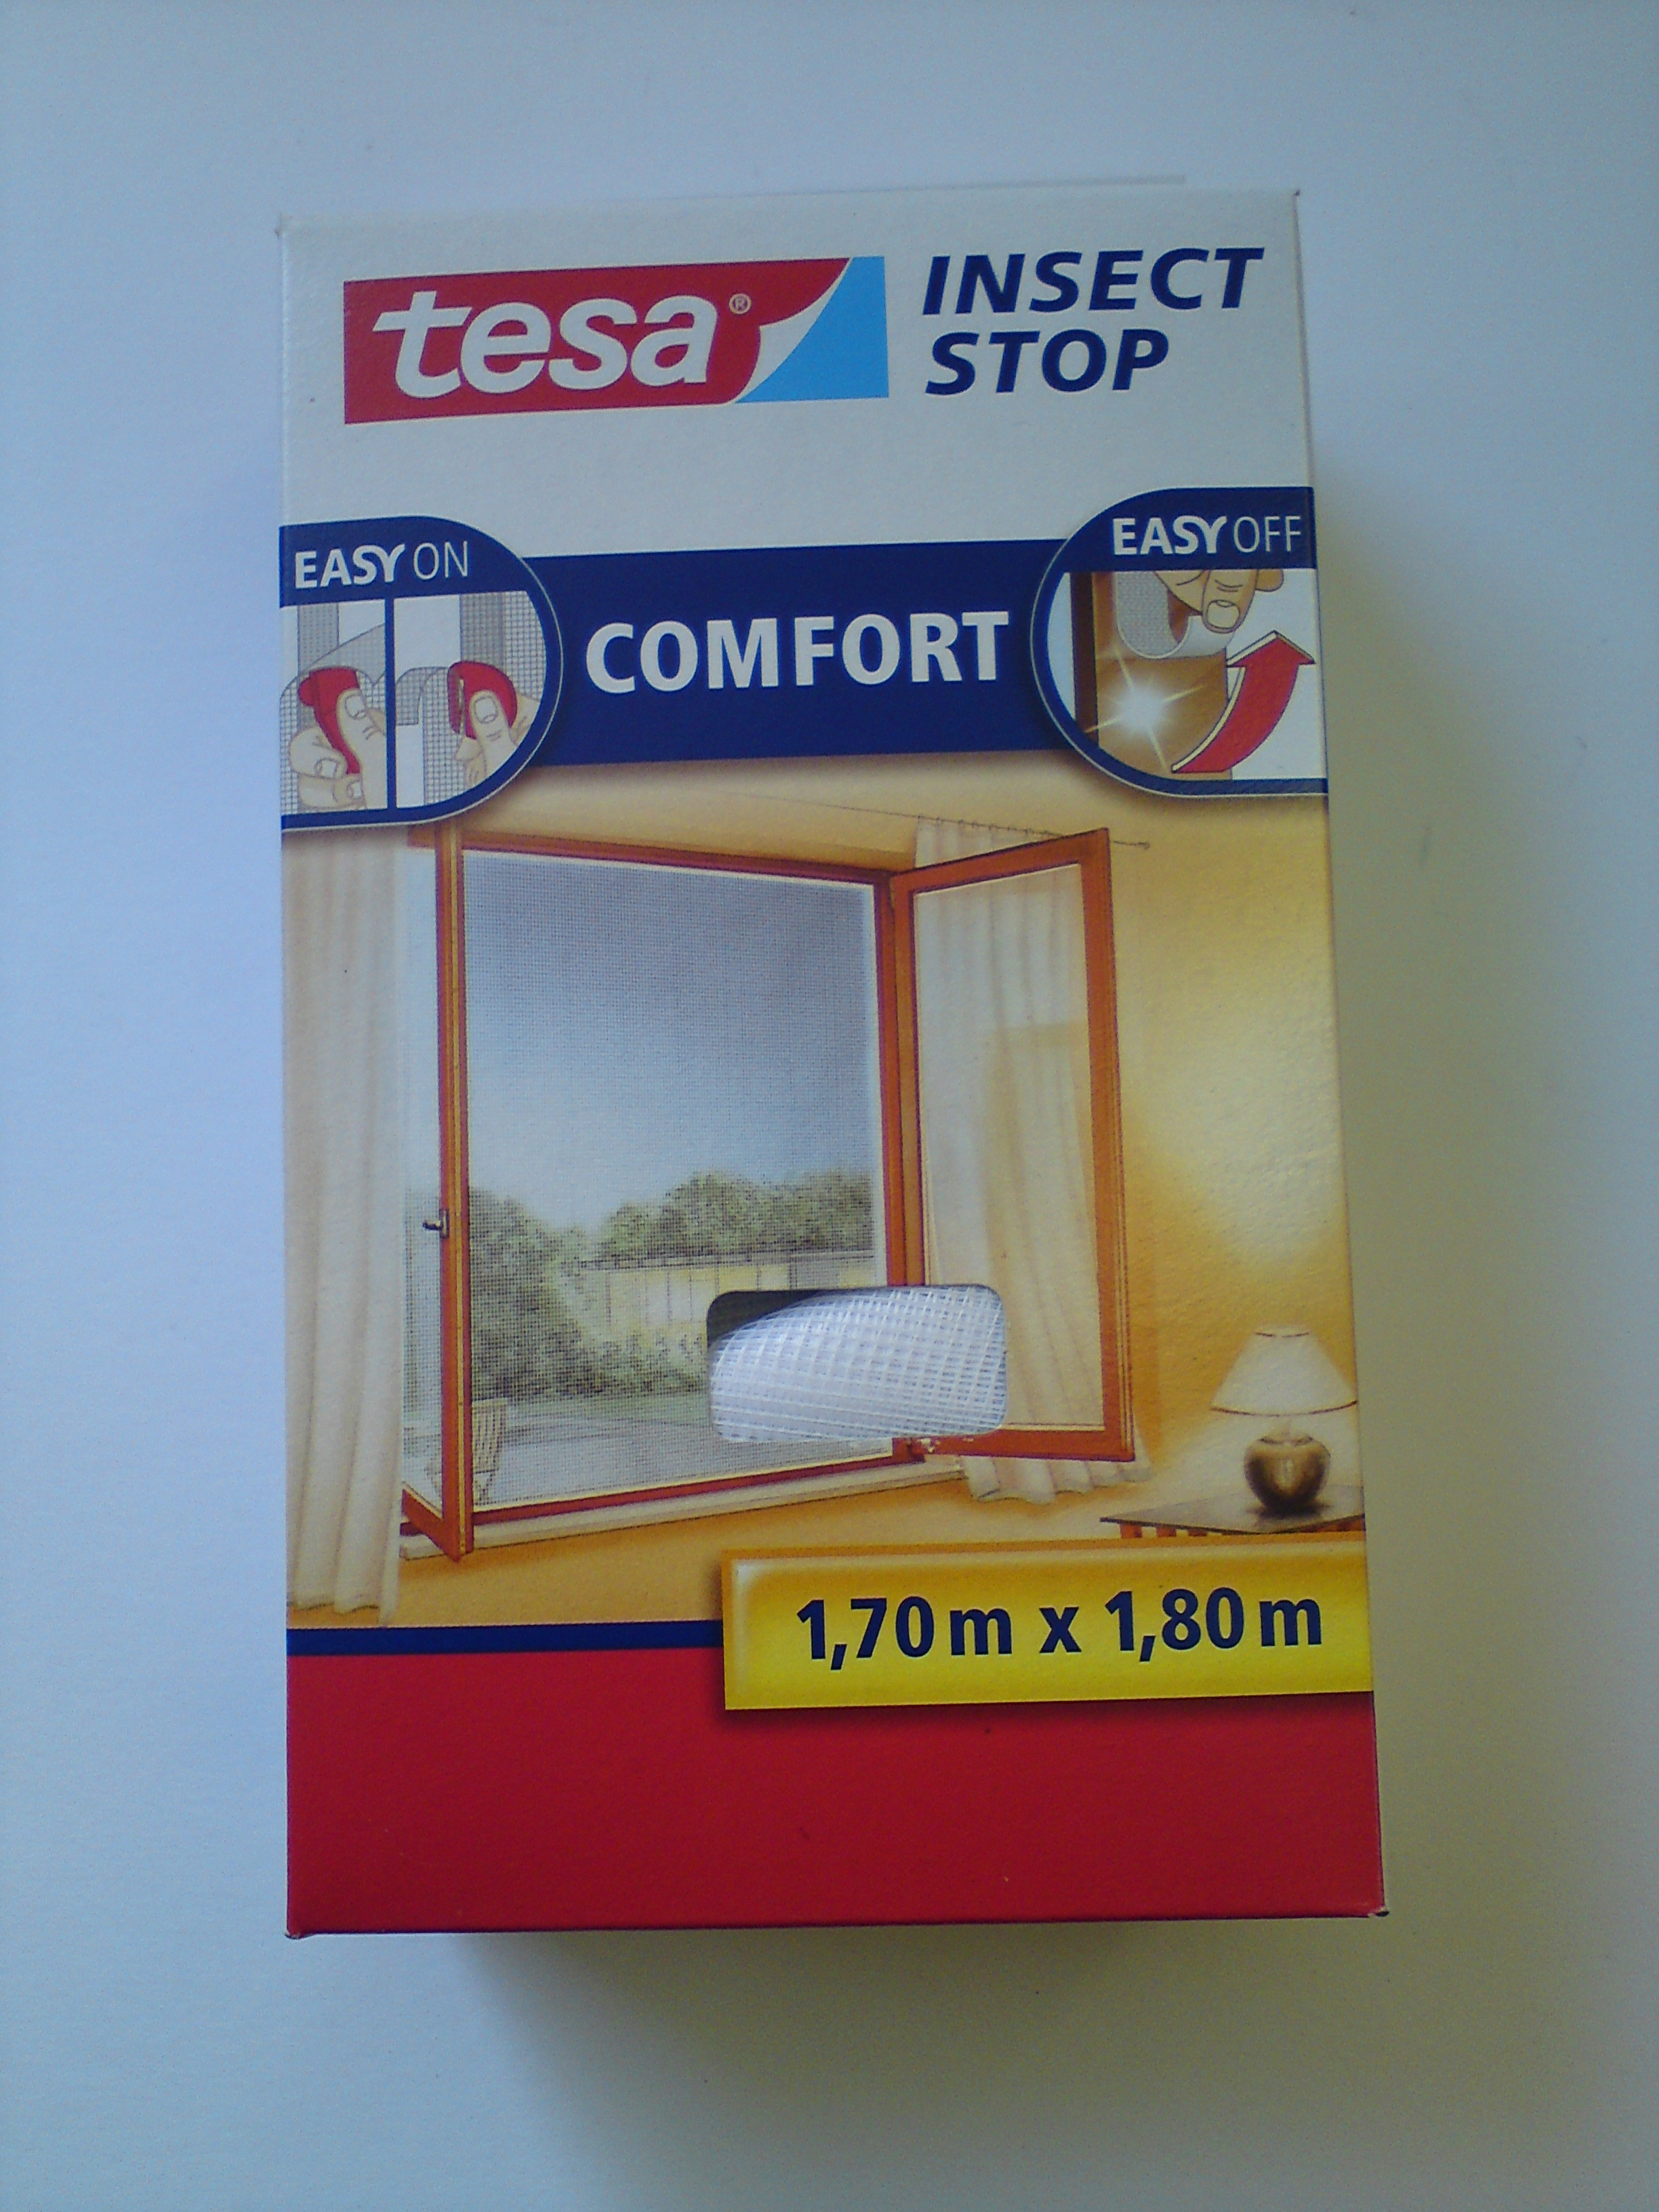 tesa insect stop inward window net. Black Bedroom Furniture Sets. Home Design Ideas